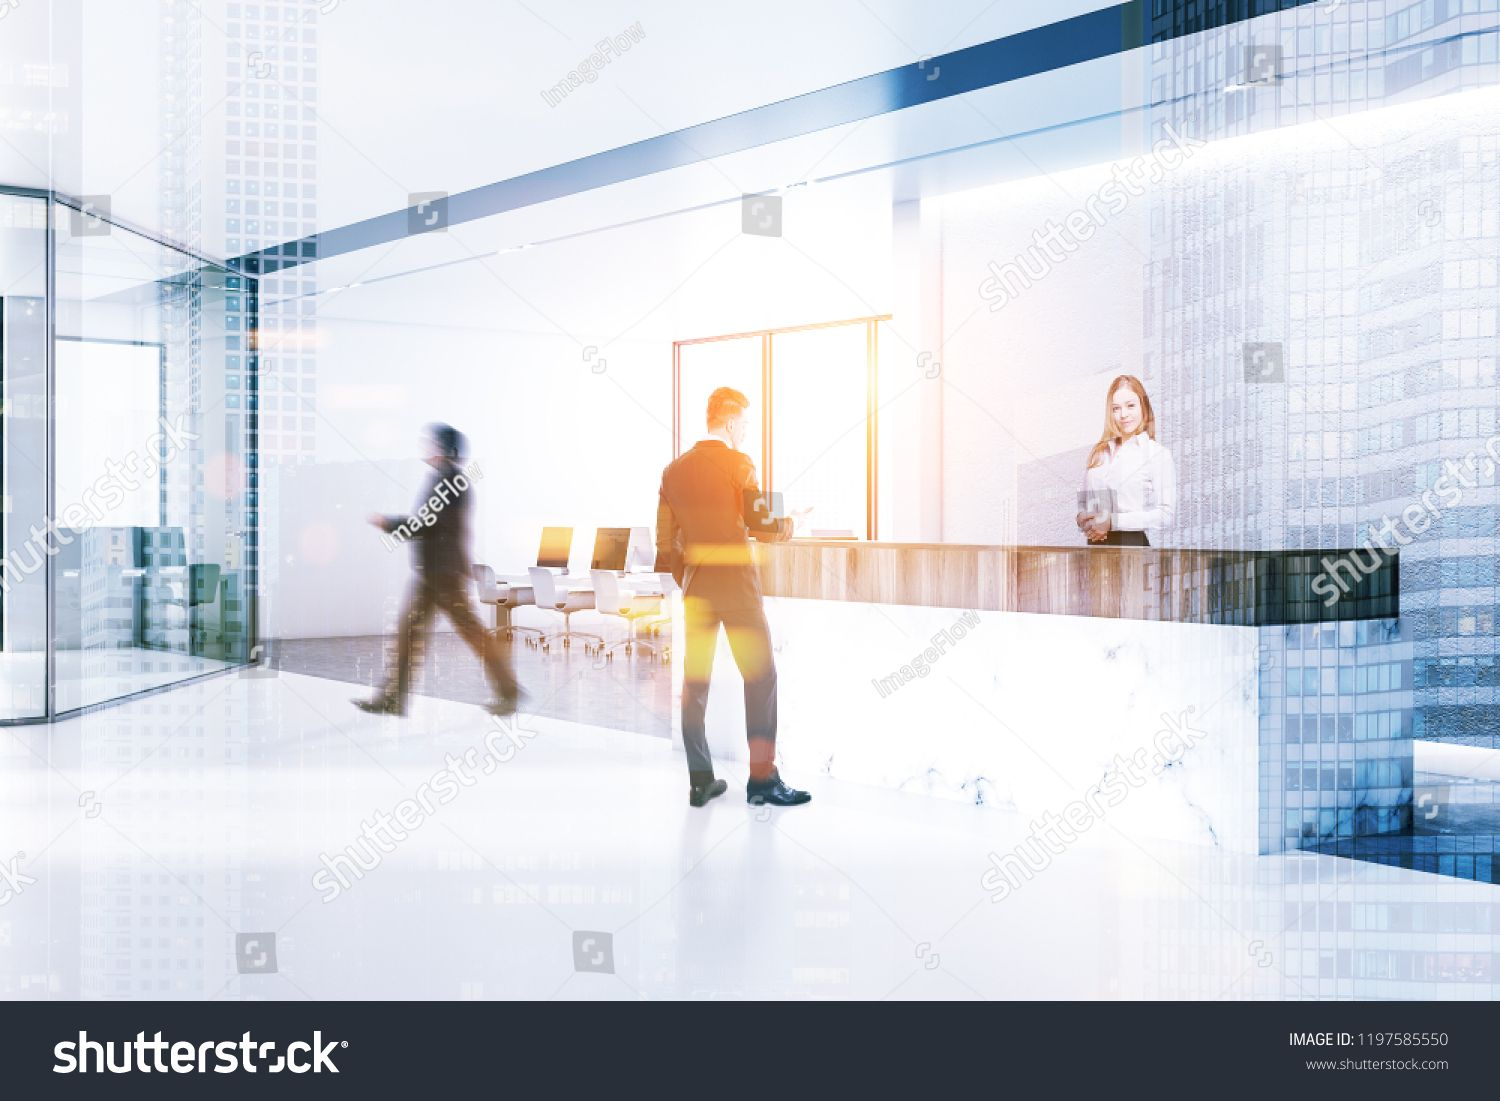 Business People In Minimalistic Office Interior With White Walls Concrete Floor With Rows Of Tables With Black Office Interiors White Concrete Concrete Floors